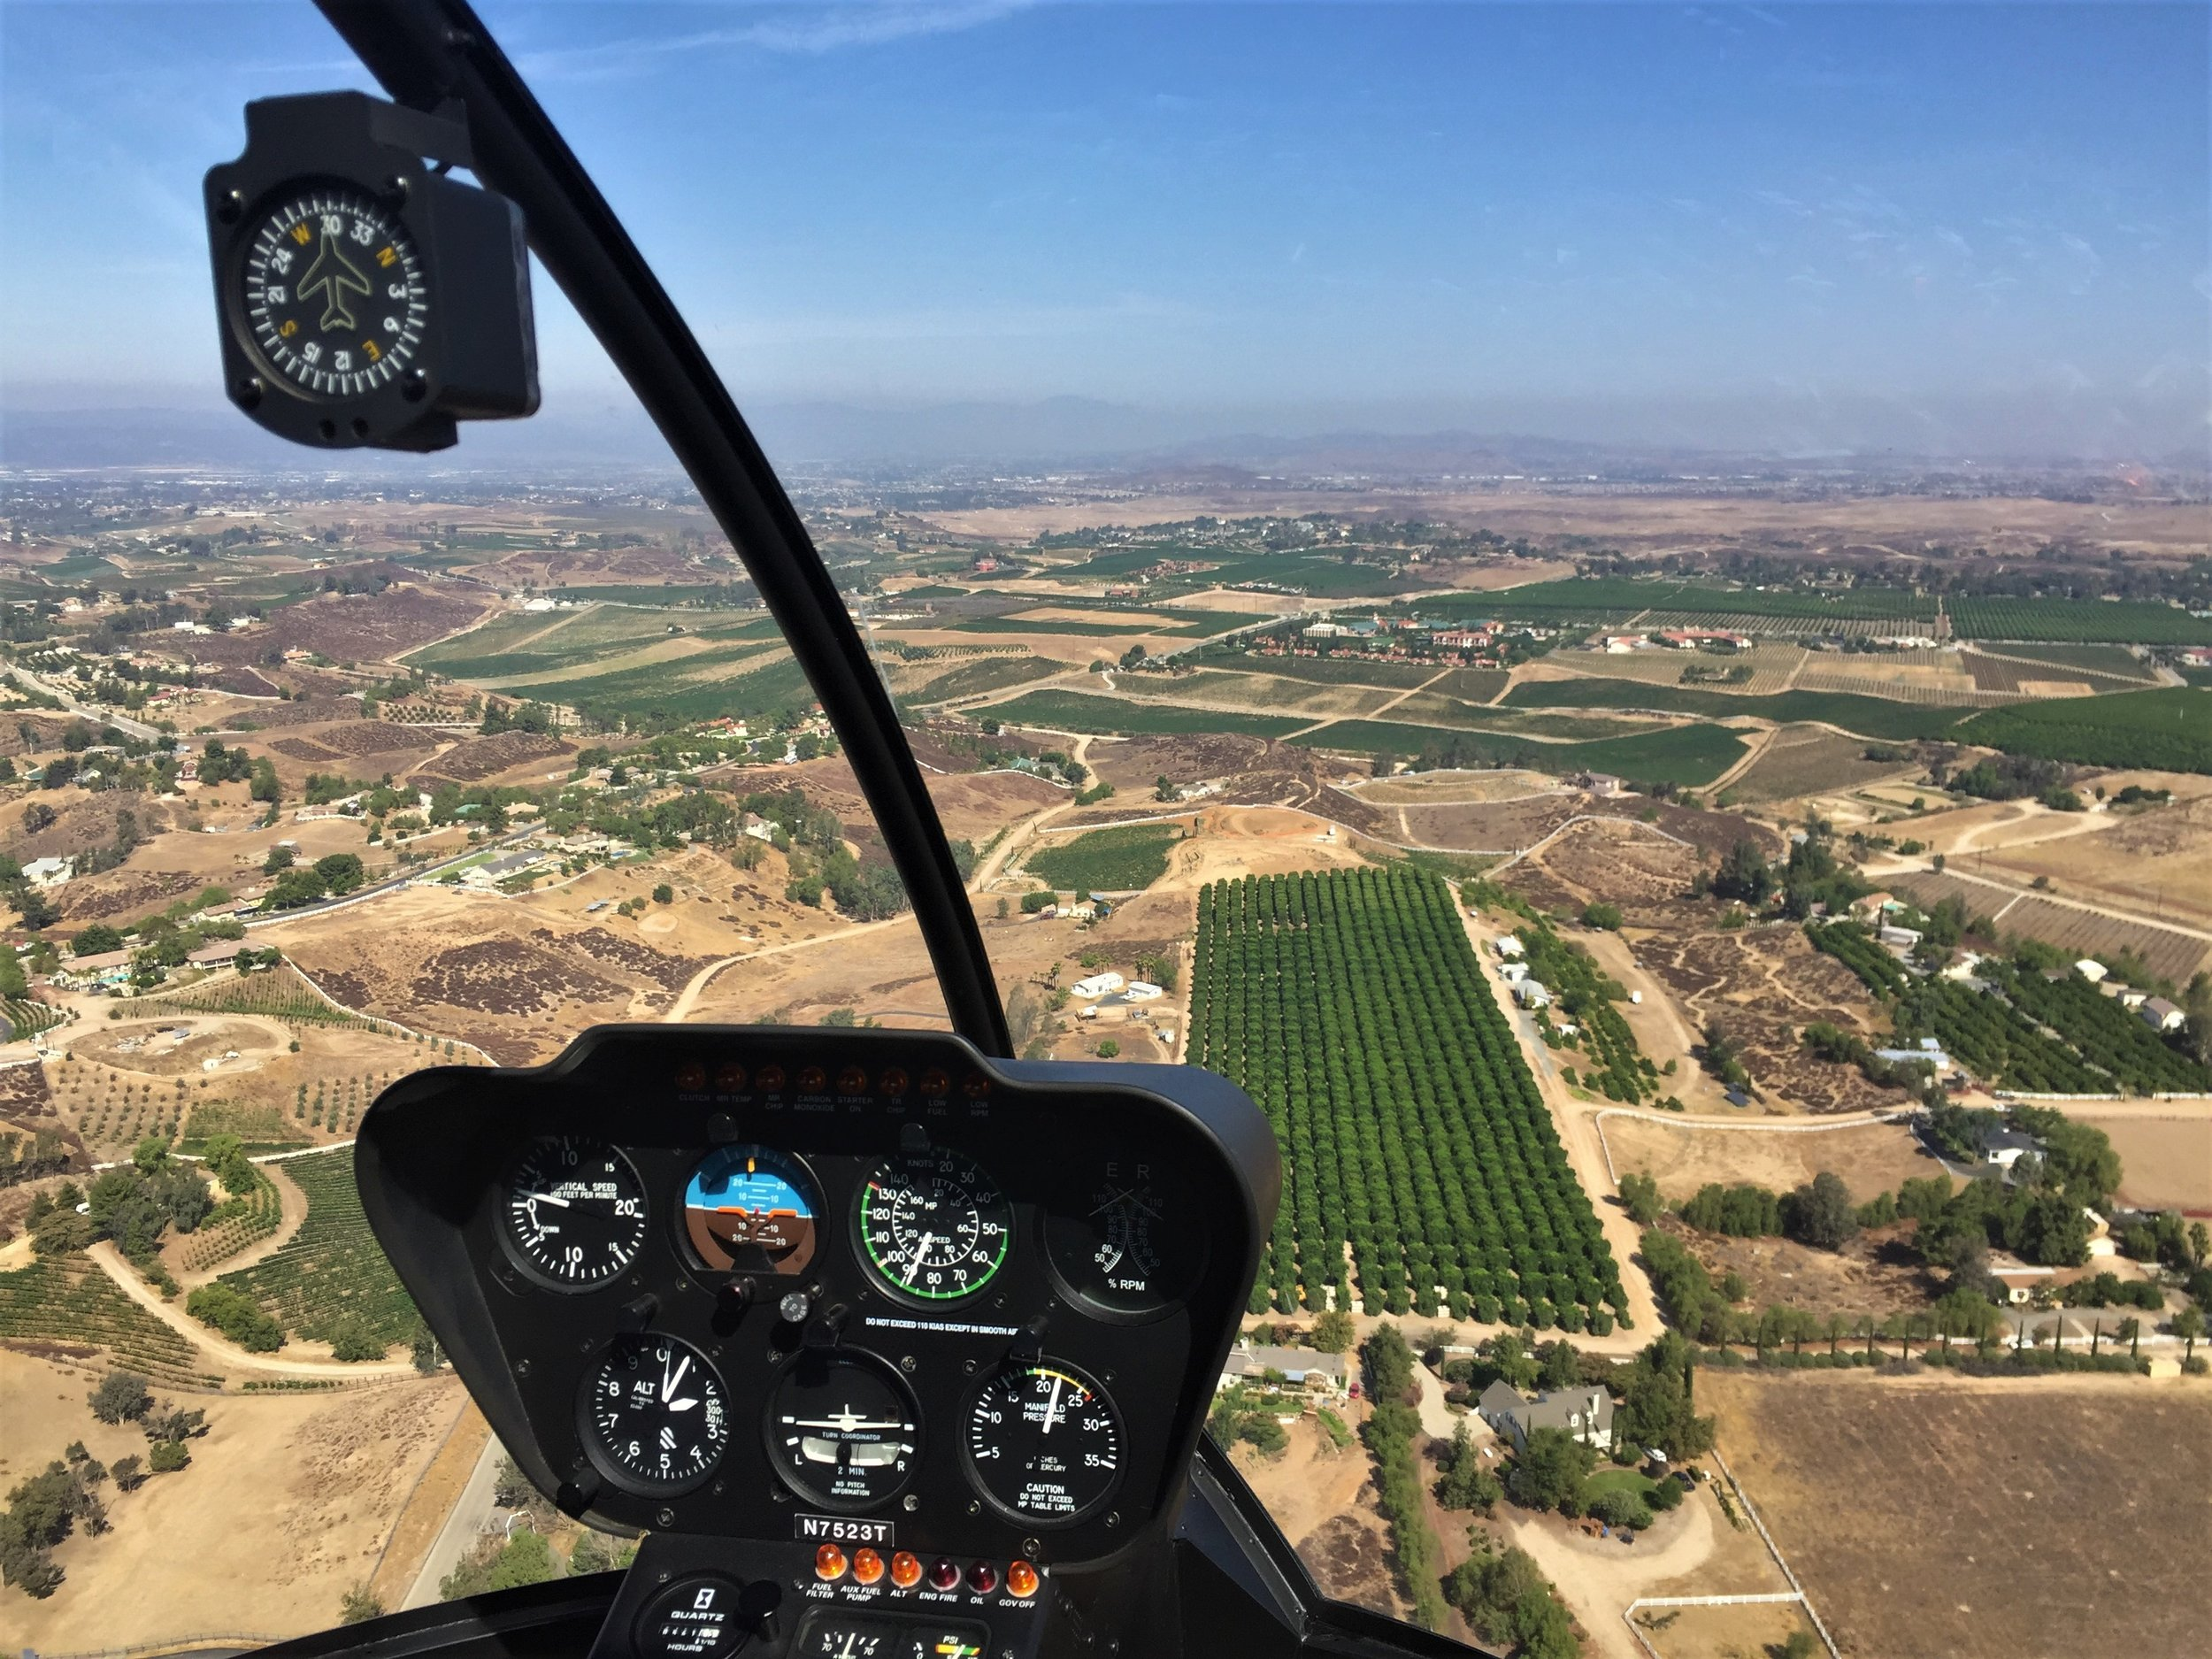 - Enjoy the views of Temecula Wine Country on approach to land!